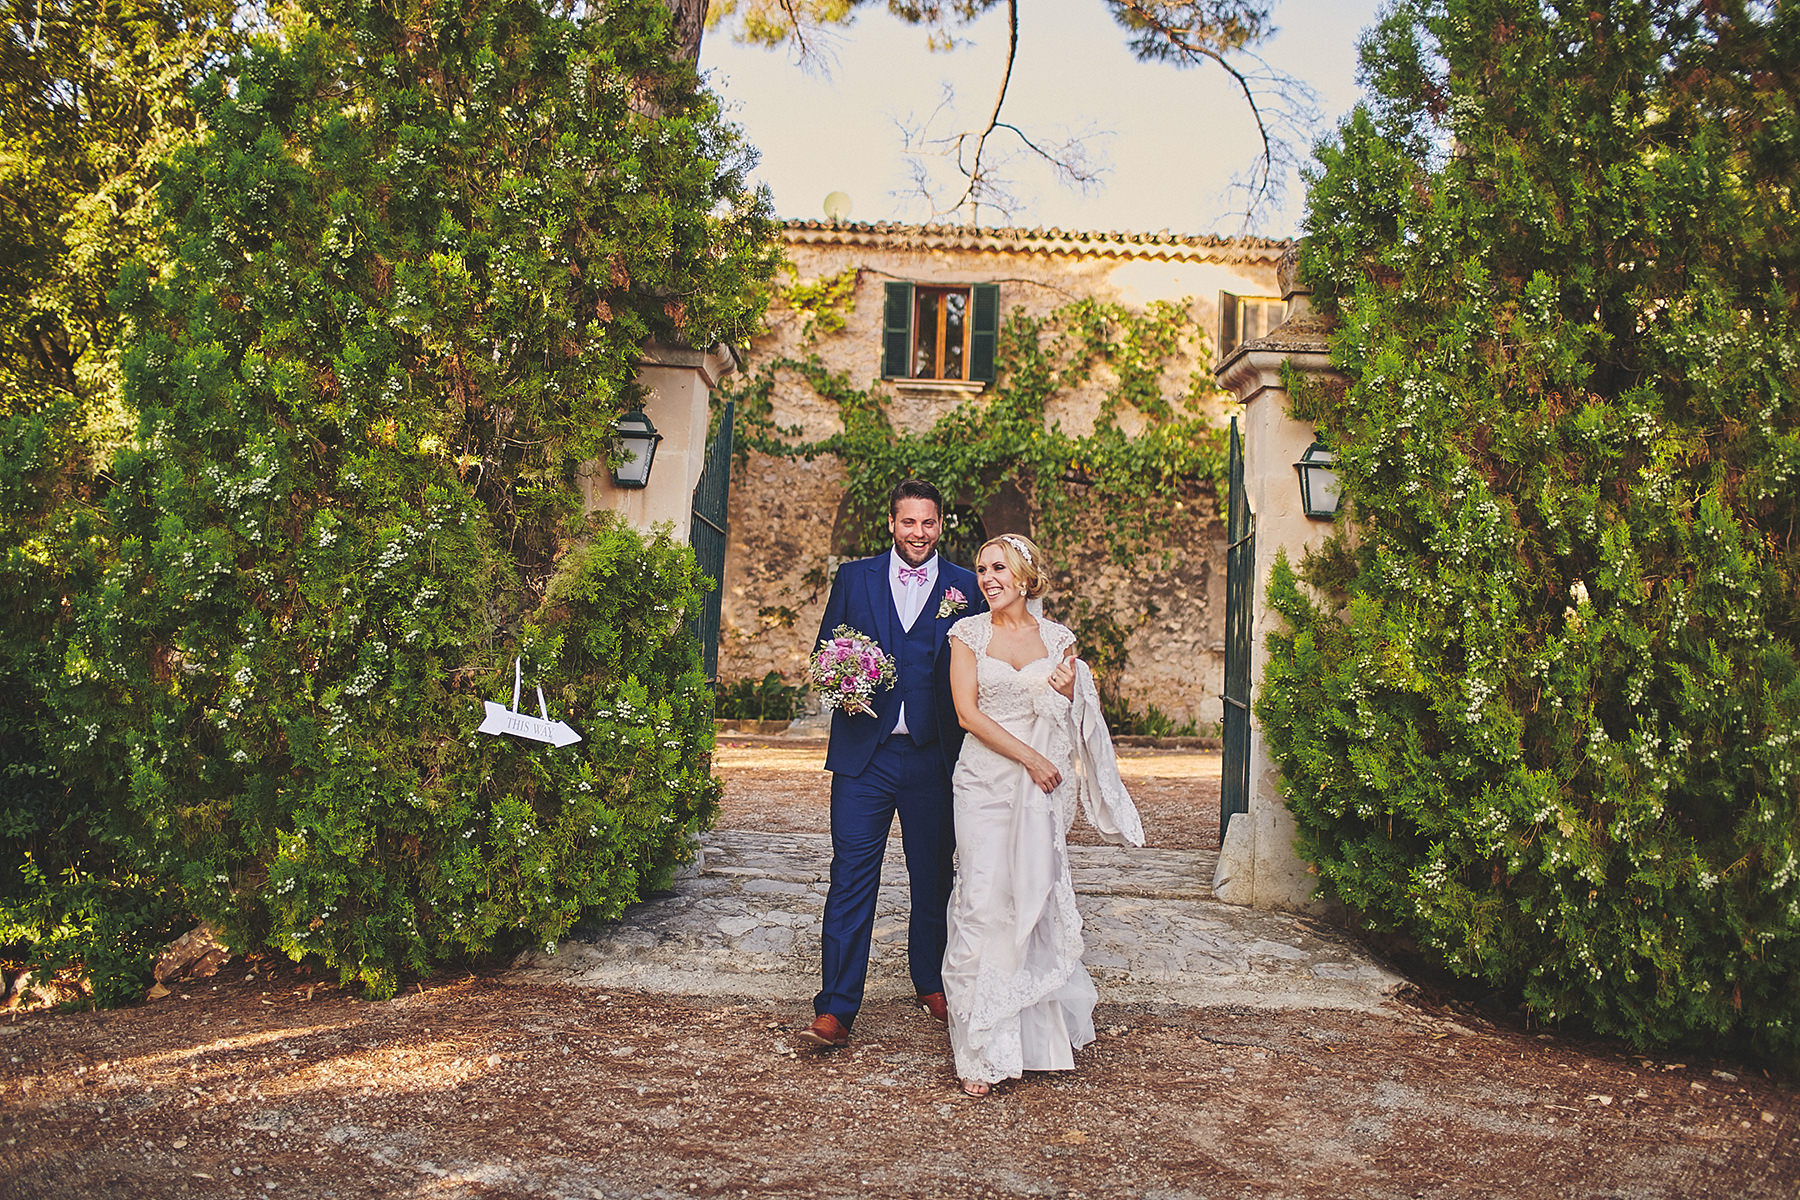 315 - Destination wedding in a magical Mallorca